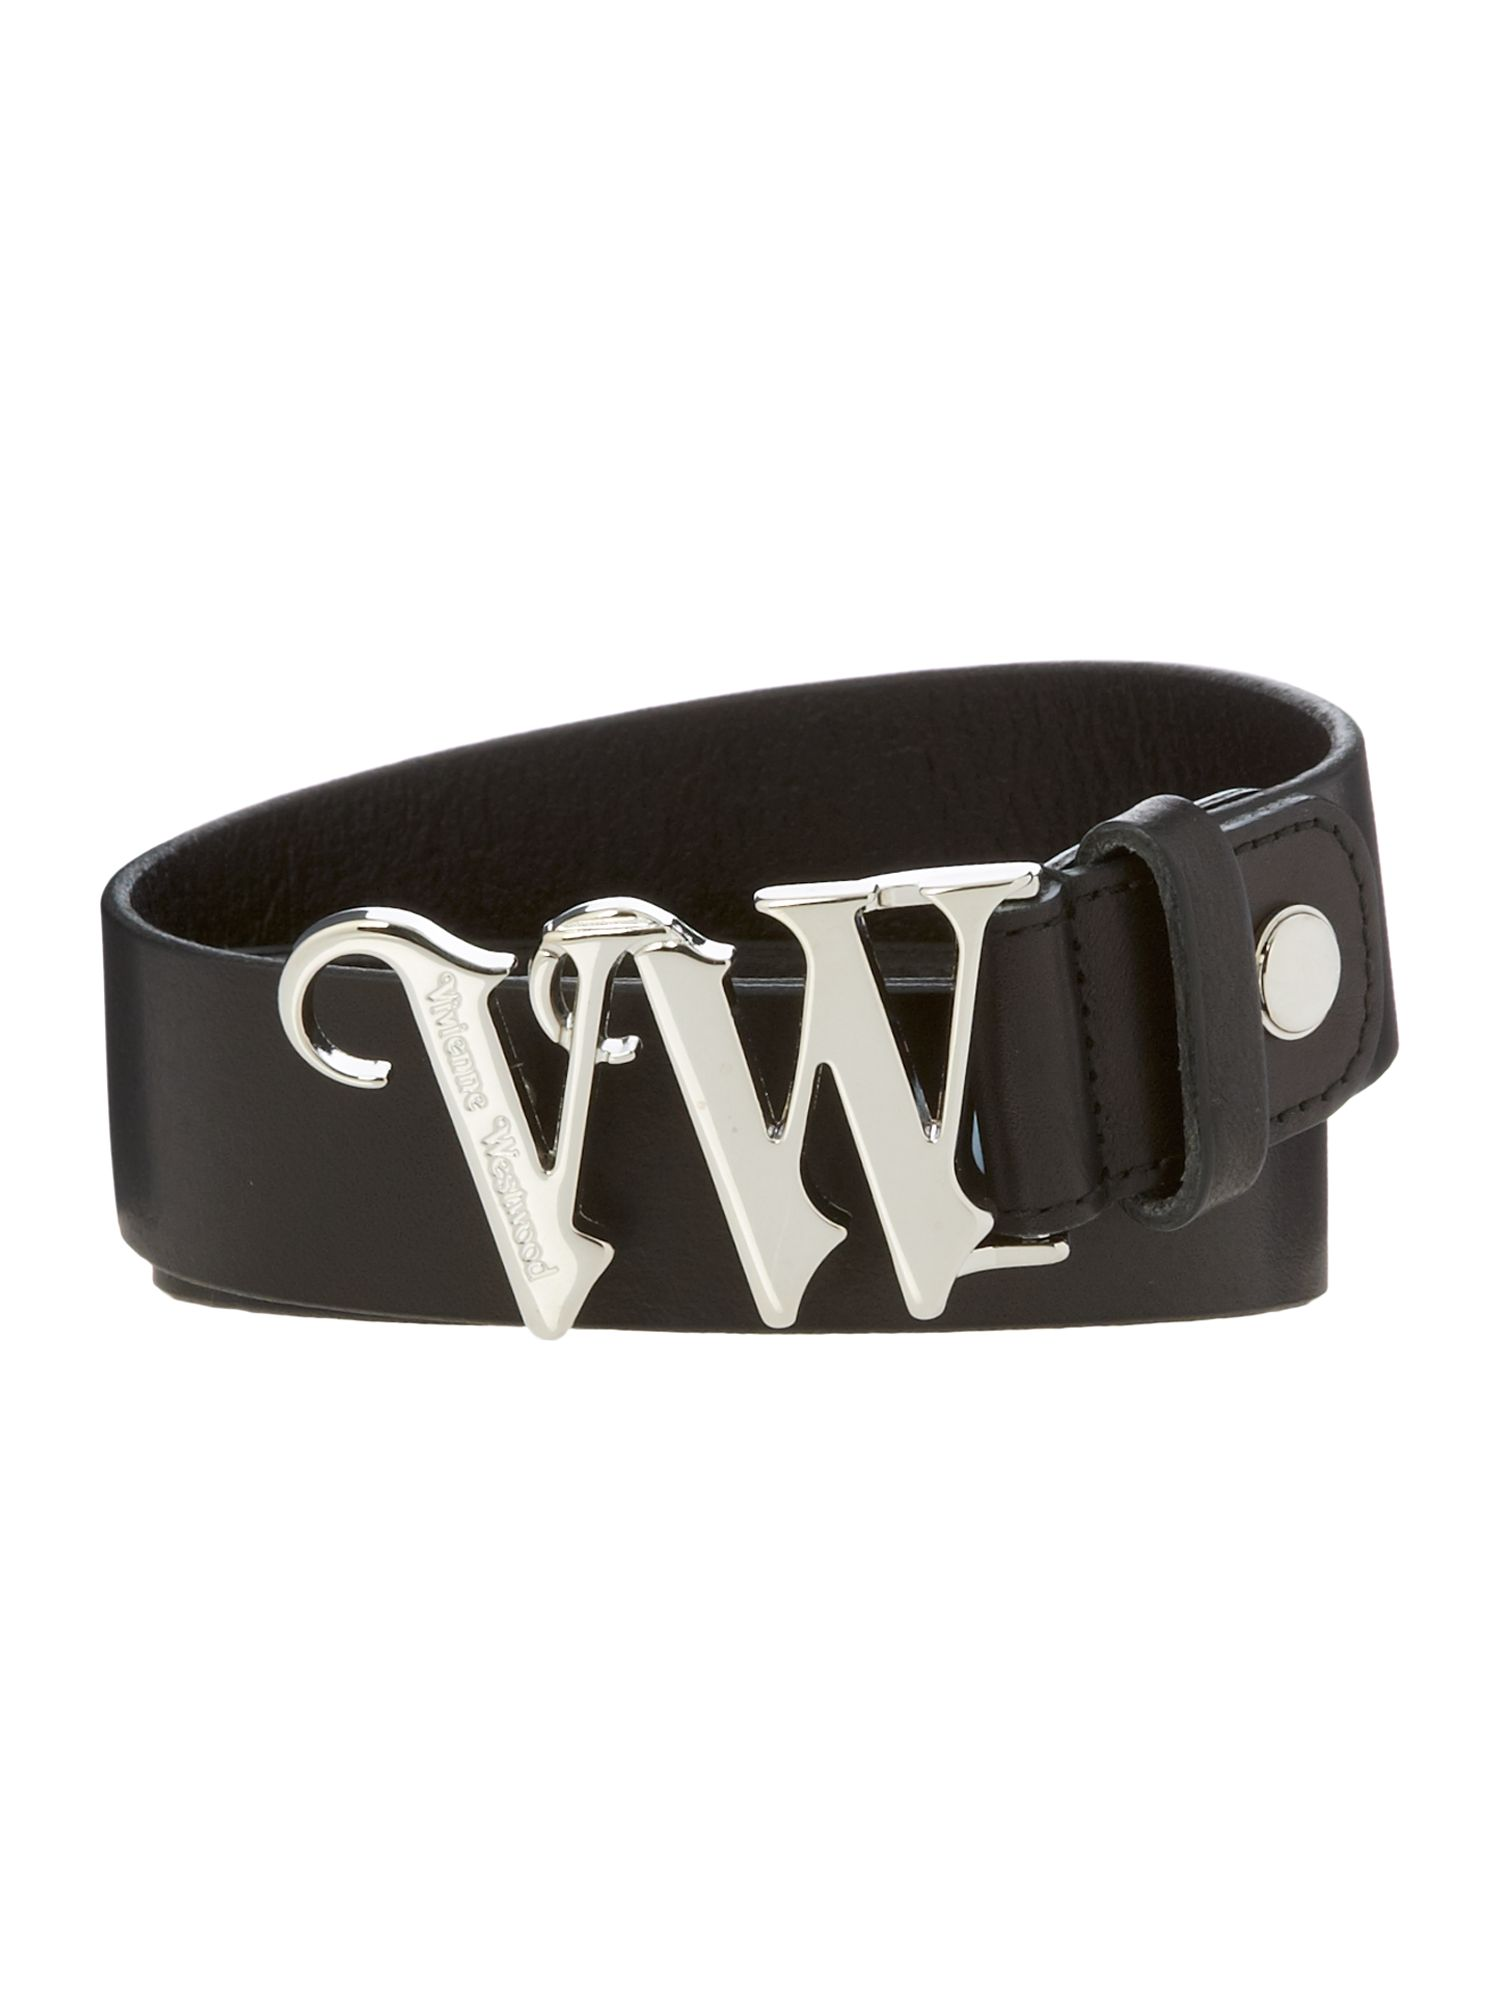 VW logo leather belt